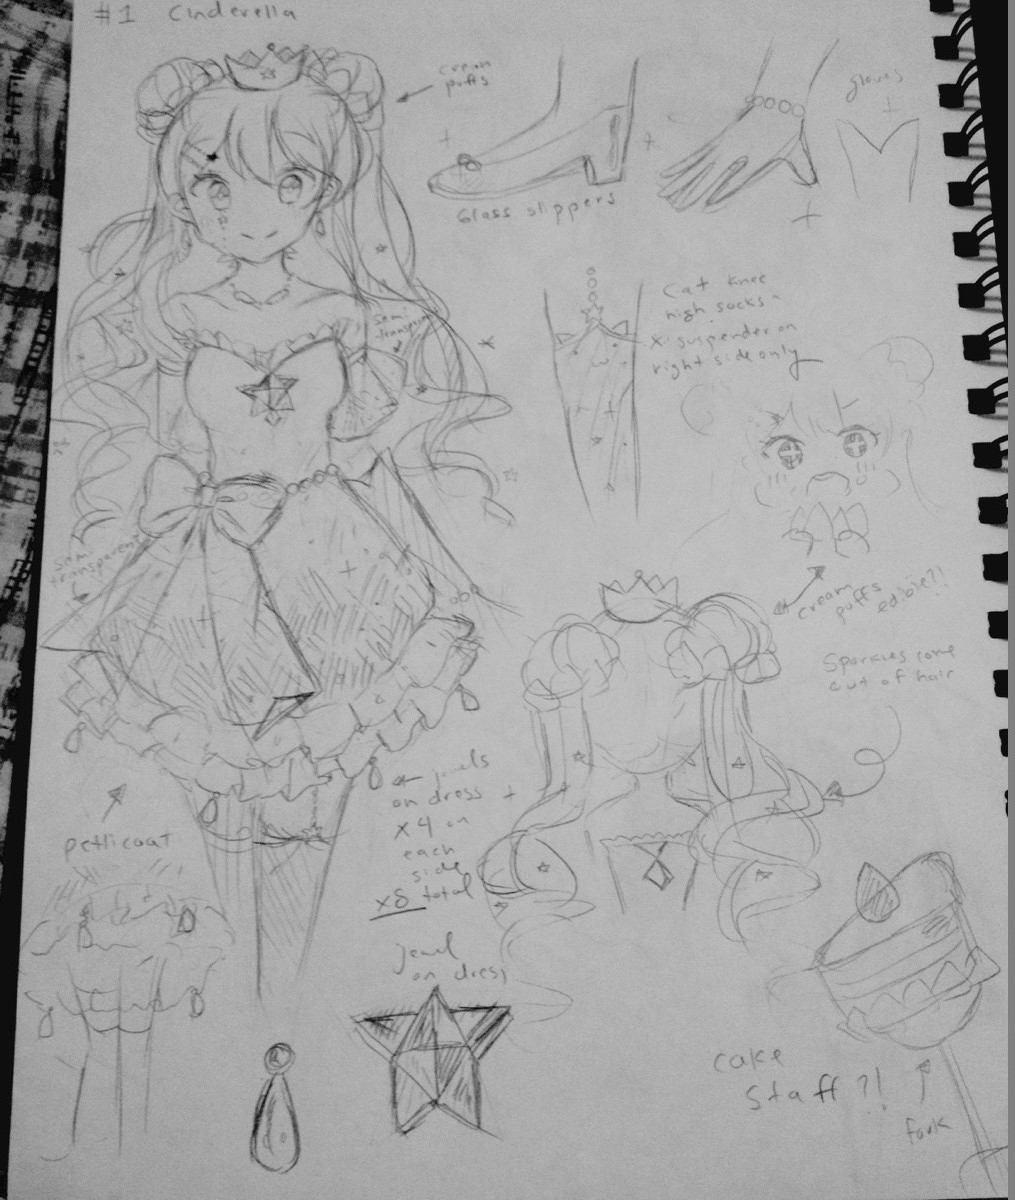 miku KEIKI night princess sketches 1.jpg